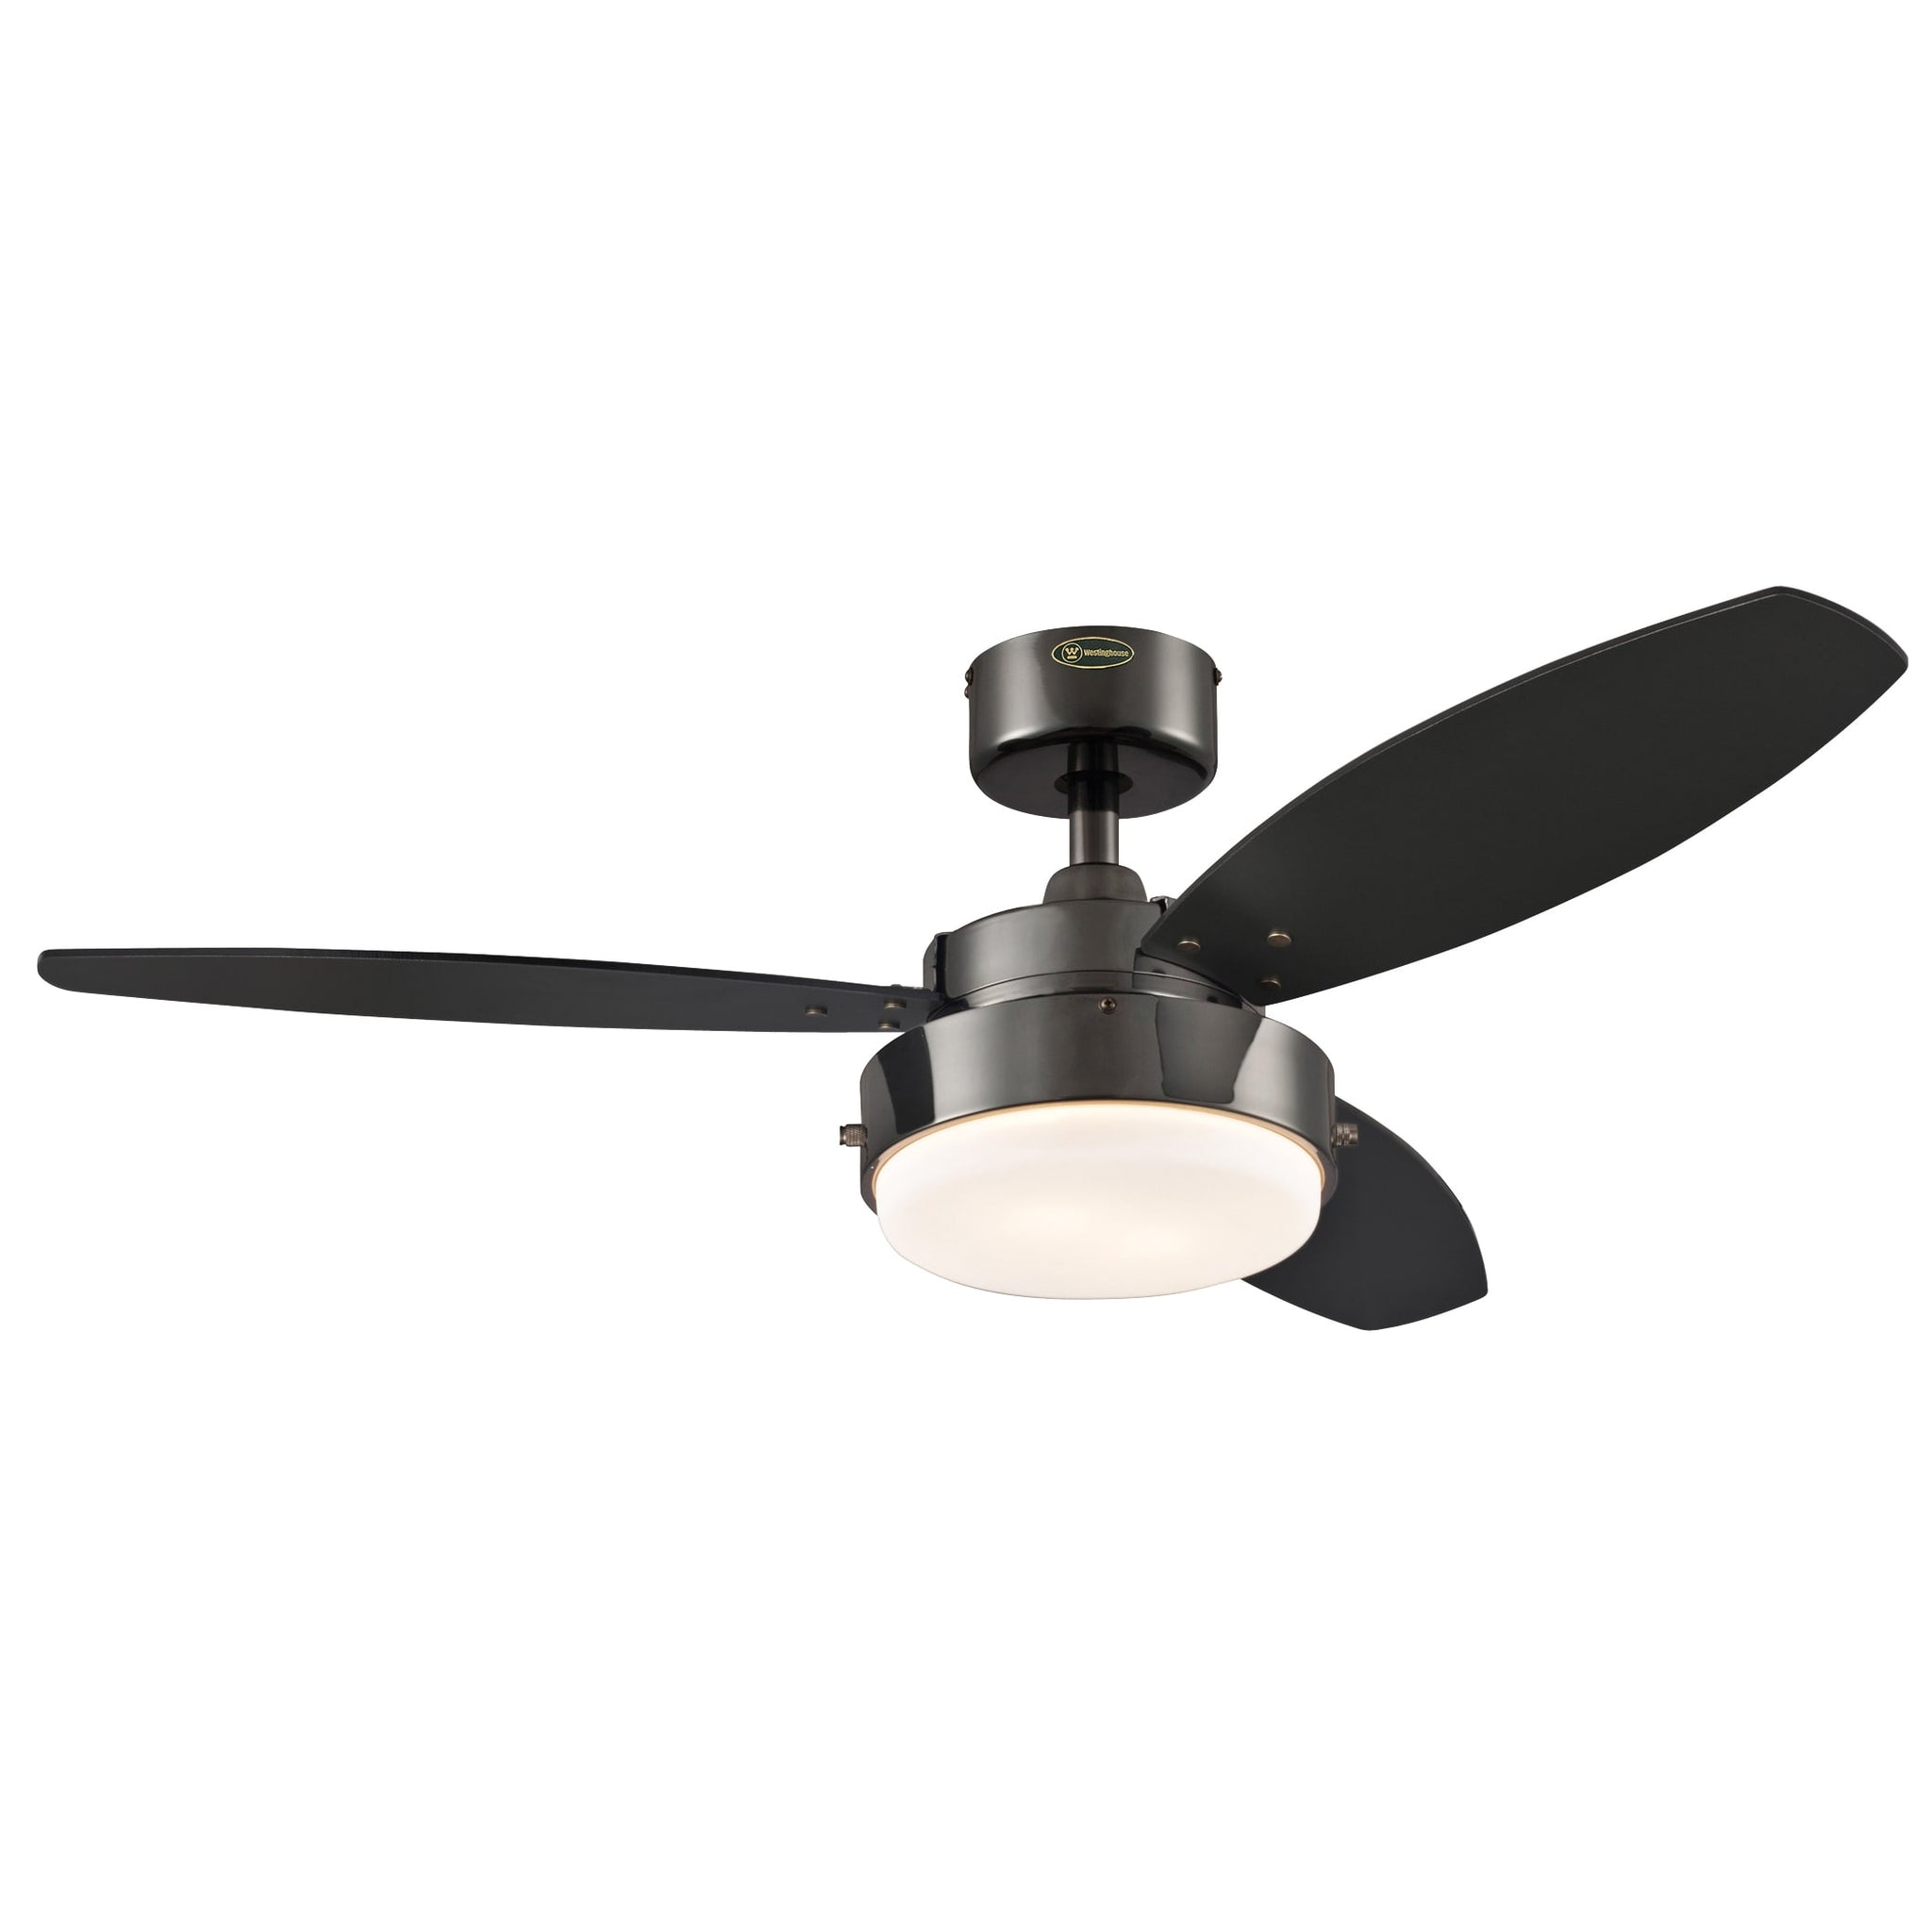 42-Inch Gunmetal Three-Blade Reversible Ceiling Fan With Light